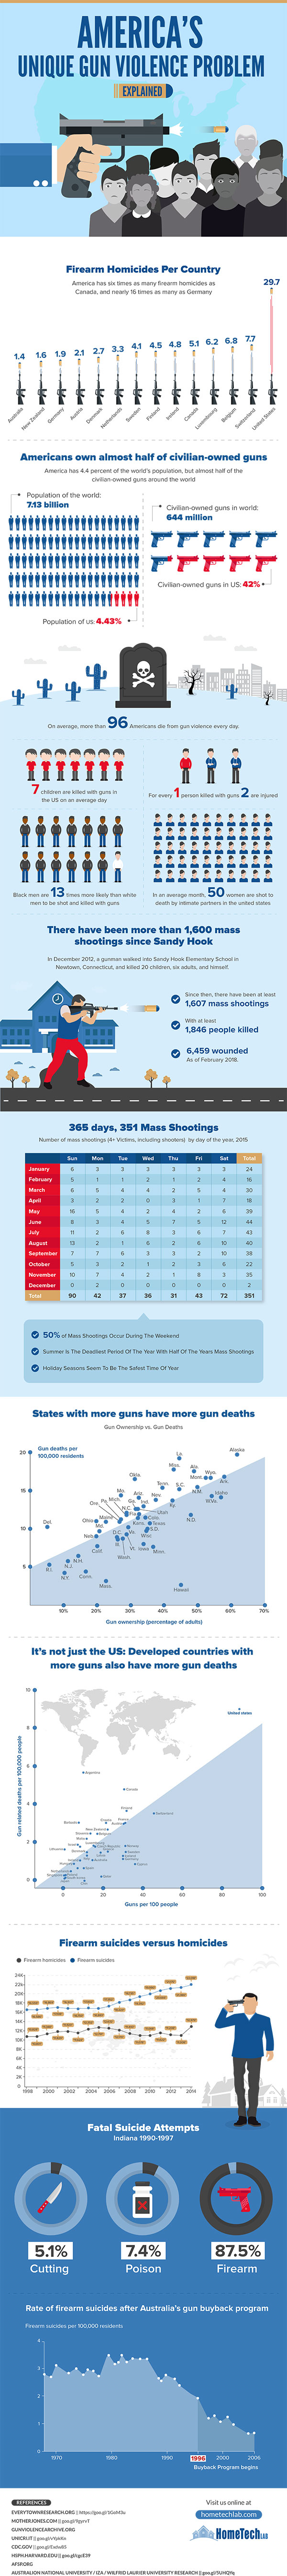 America's Gun Violence Problem Statistics facts